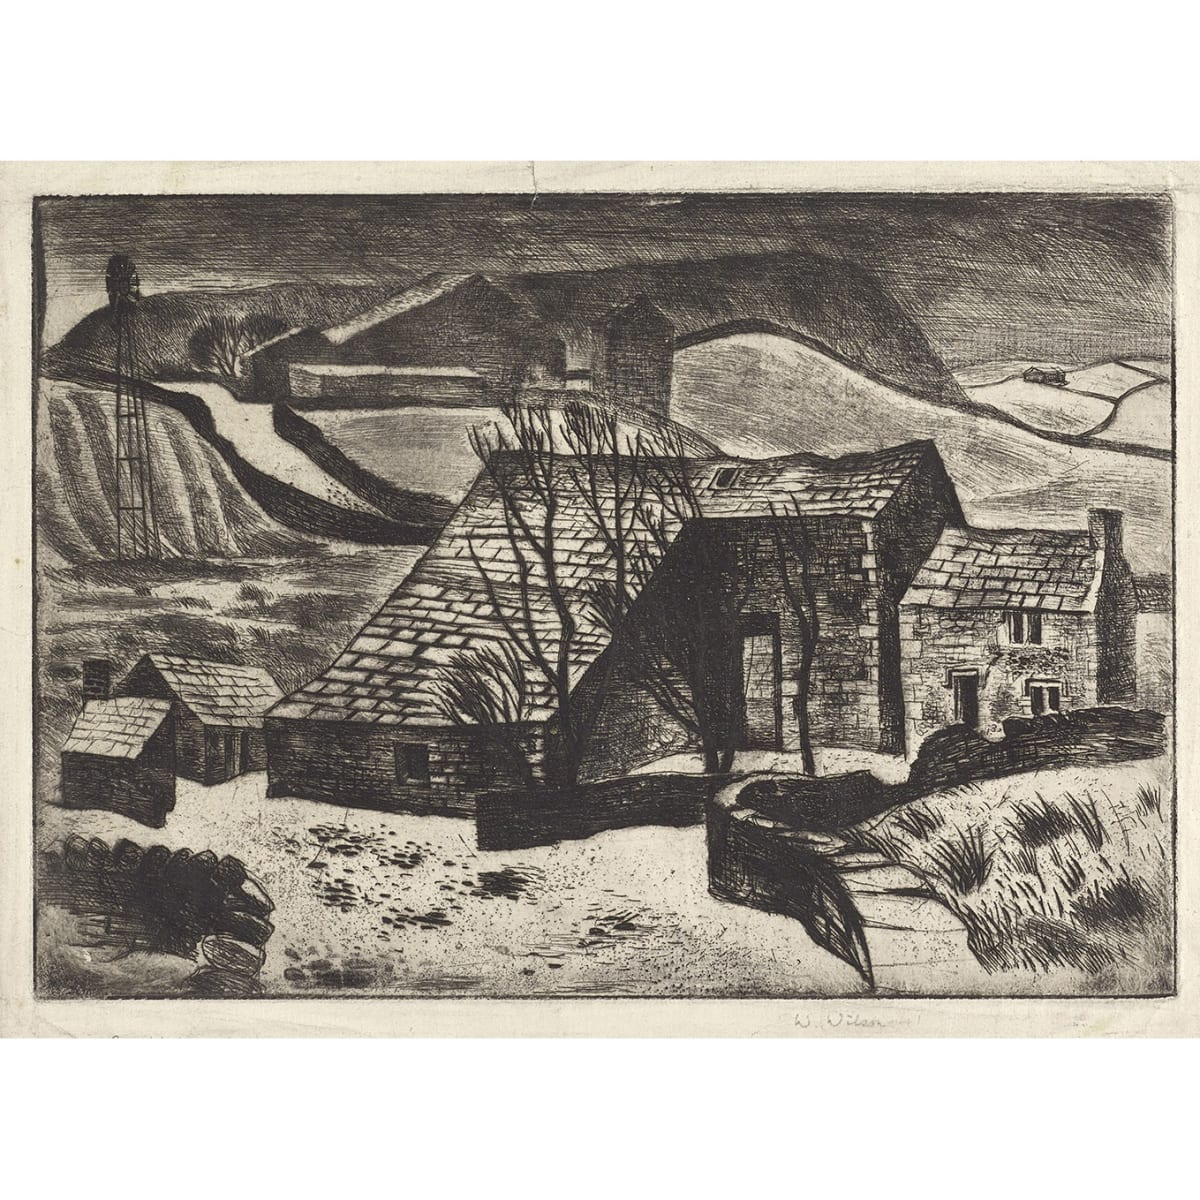 William Wilson On Walmersley Moor signed and titled in pencil to margin etching 7 x 9 3/4 inches